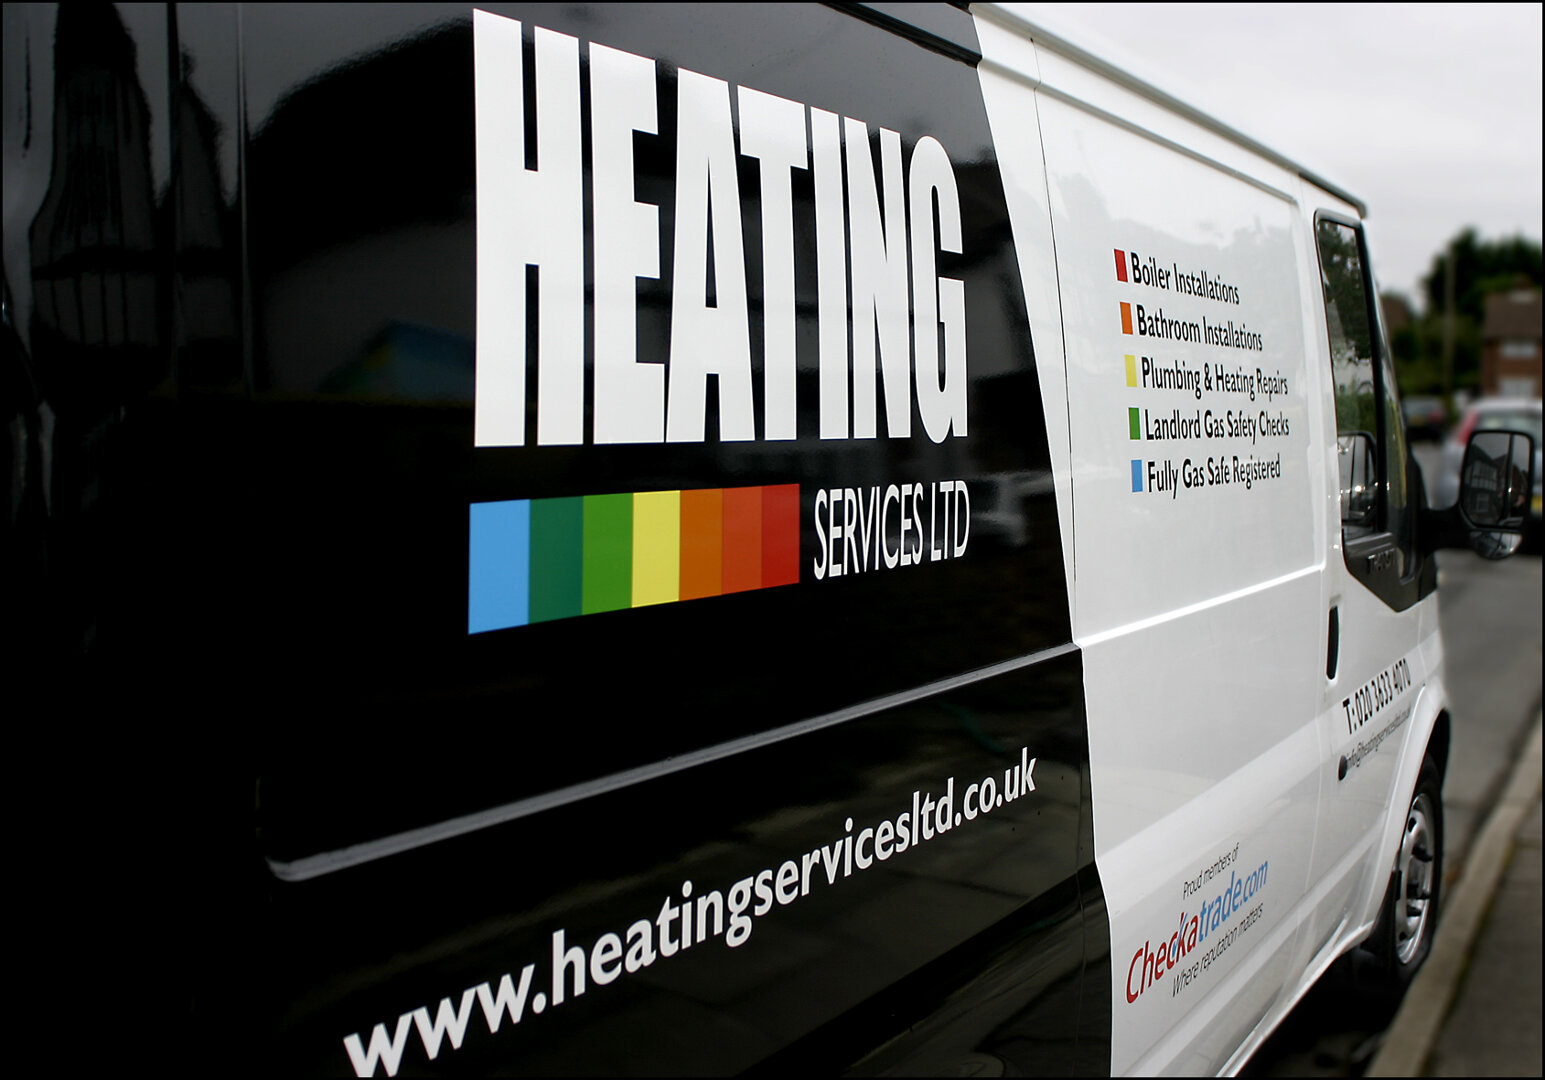 Plumbers Boiler Installation Service and Repairs and Bathroom Design and Installation by Heating Services Ltd in Redhill (2)